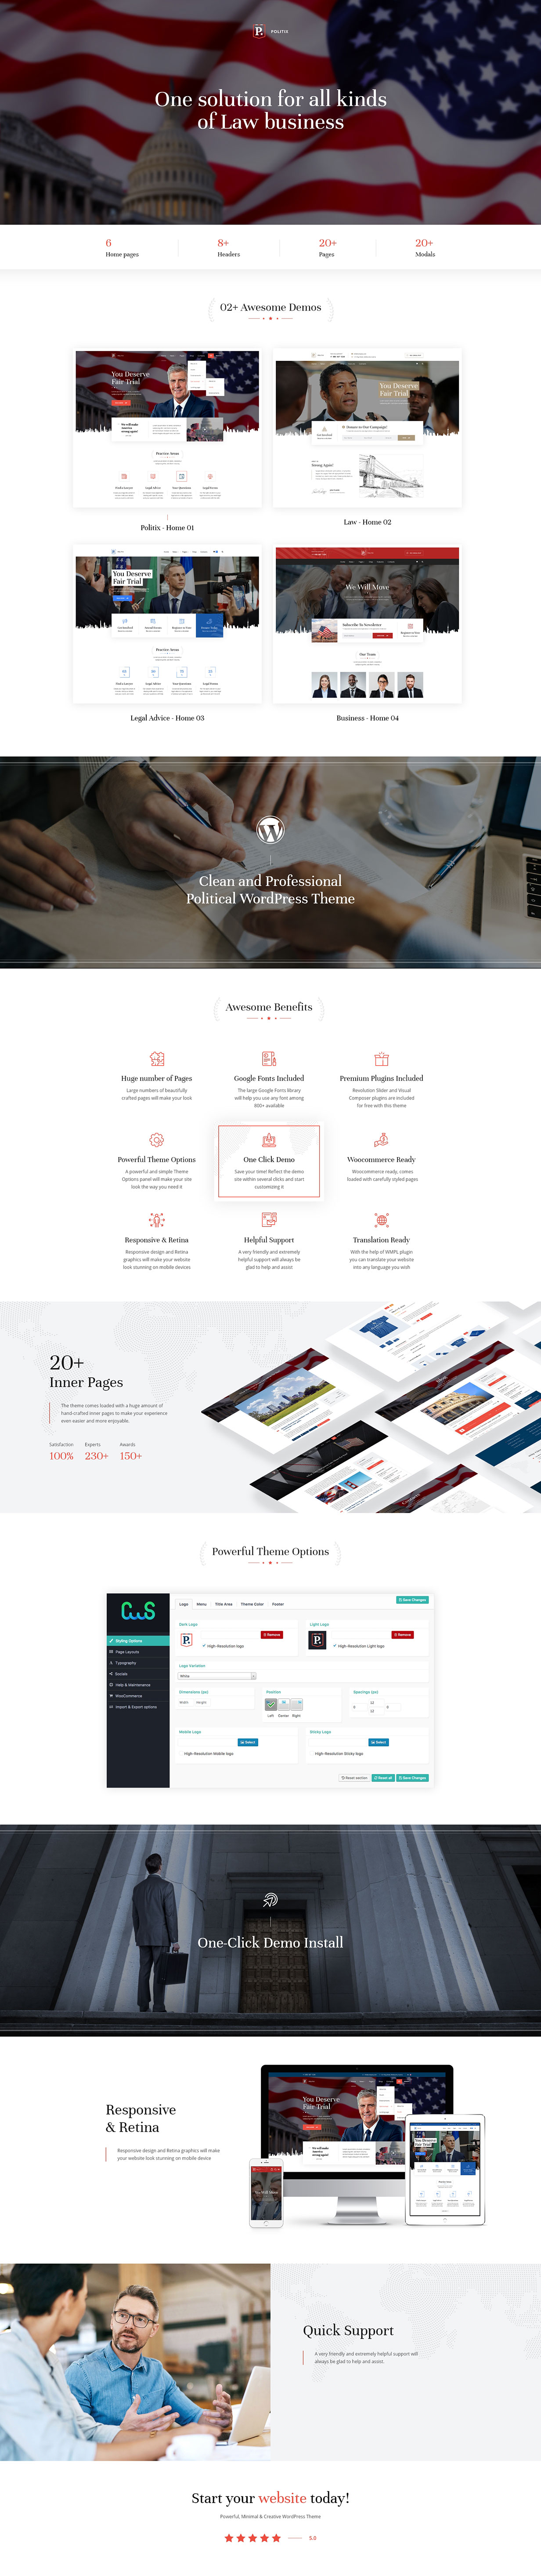 Politix - Political Campaign WordPress Theme